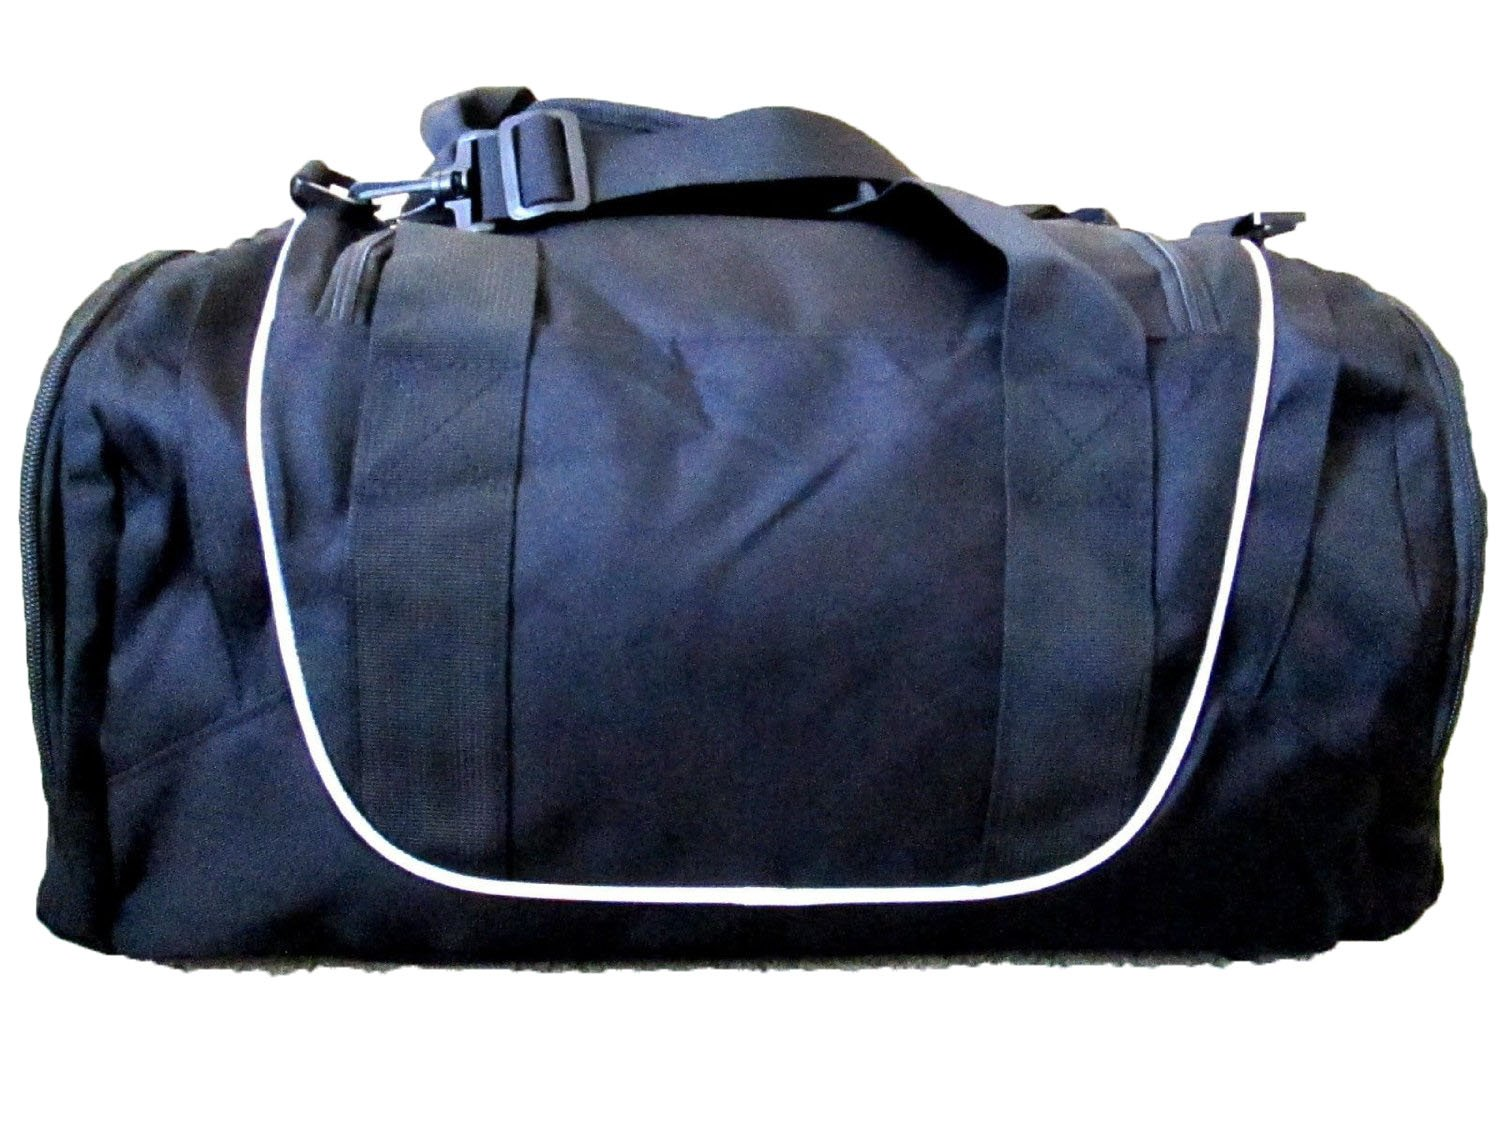 51340be1aa43 Nike Air Jordan Duffel Gym Bag in Black and White 9A1498-210 by Nike   Amazon.co.uk  Sports   Outdoors